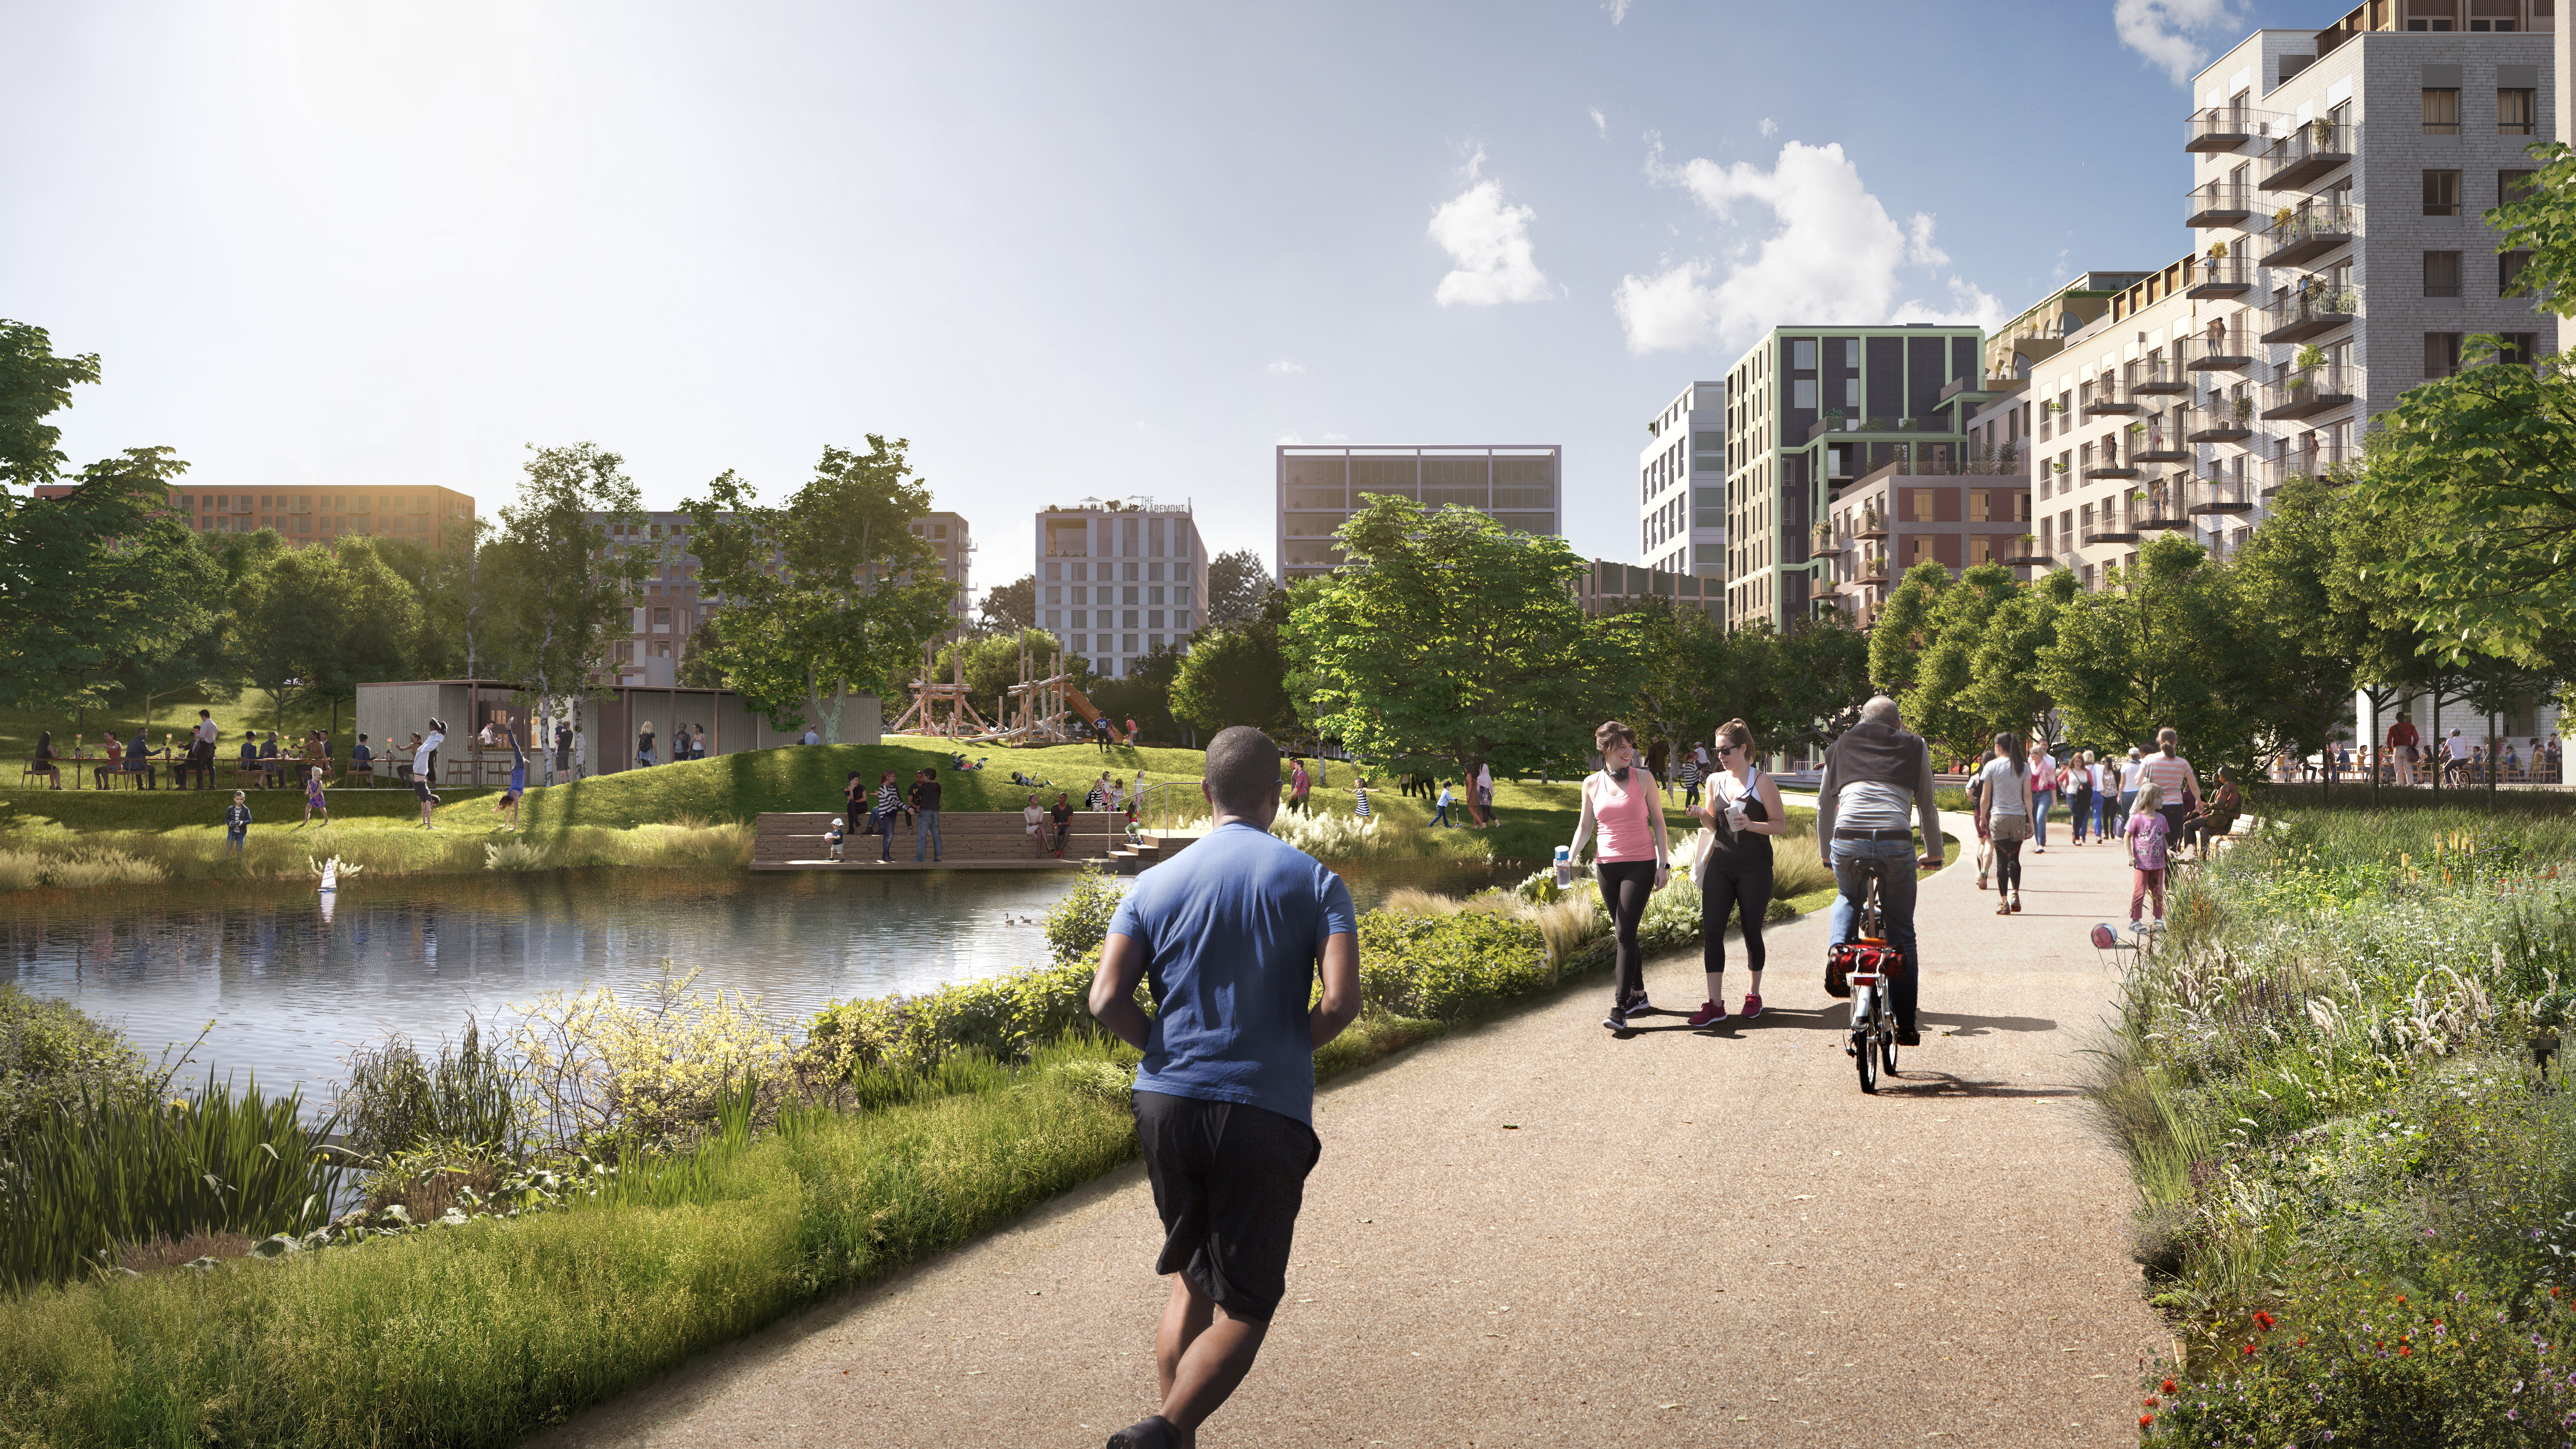 Putting sport and wellbeing at the heart of the Brent Cross redevelopment project.